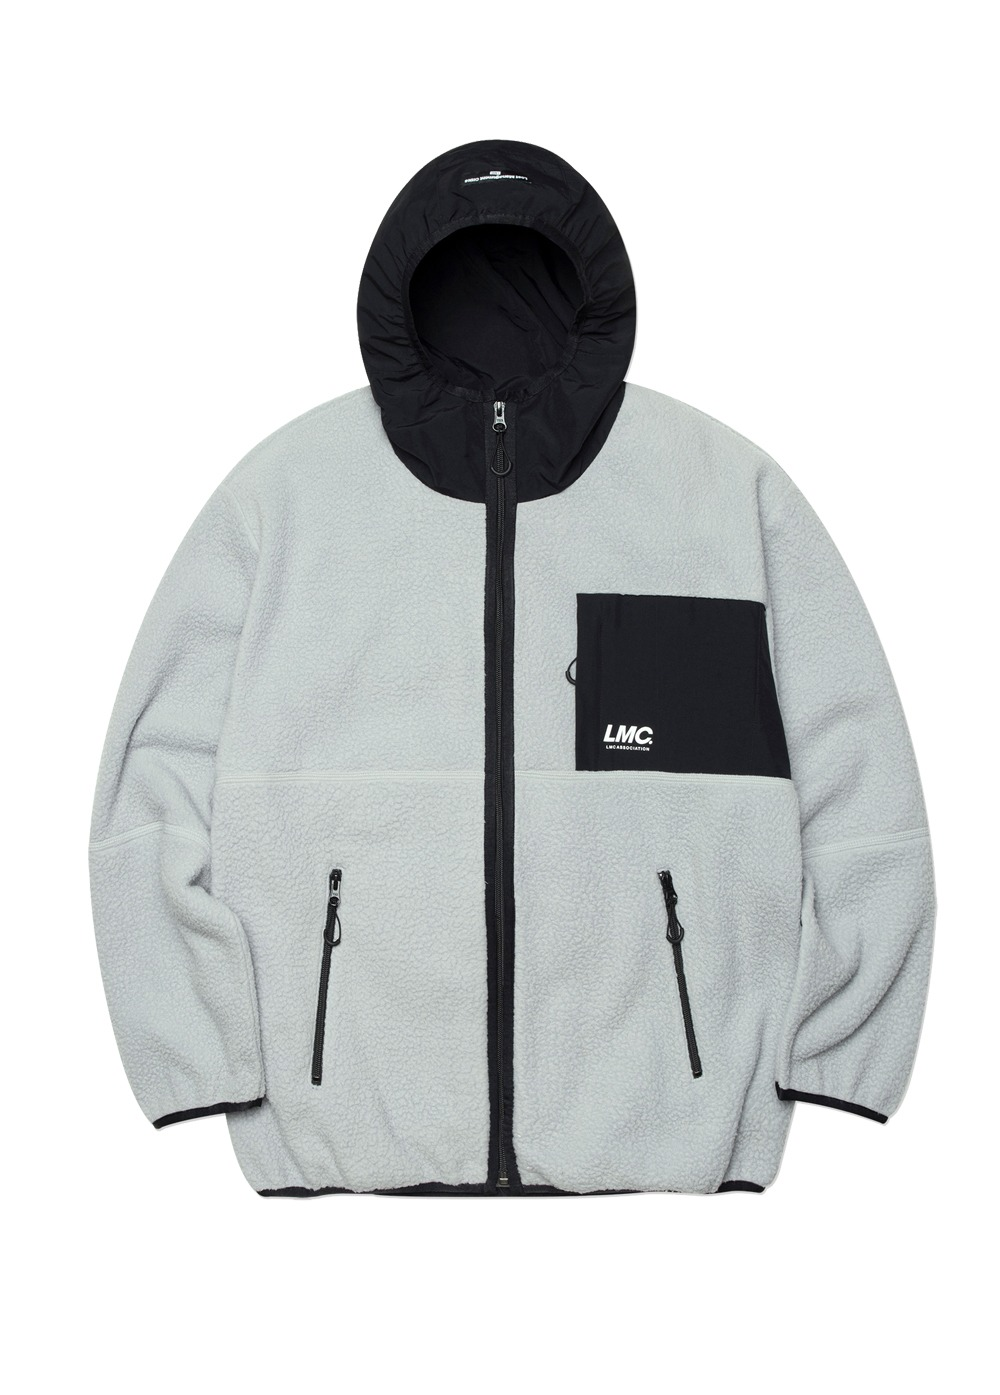 LMC HOODED FLEECE JACKET gray